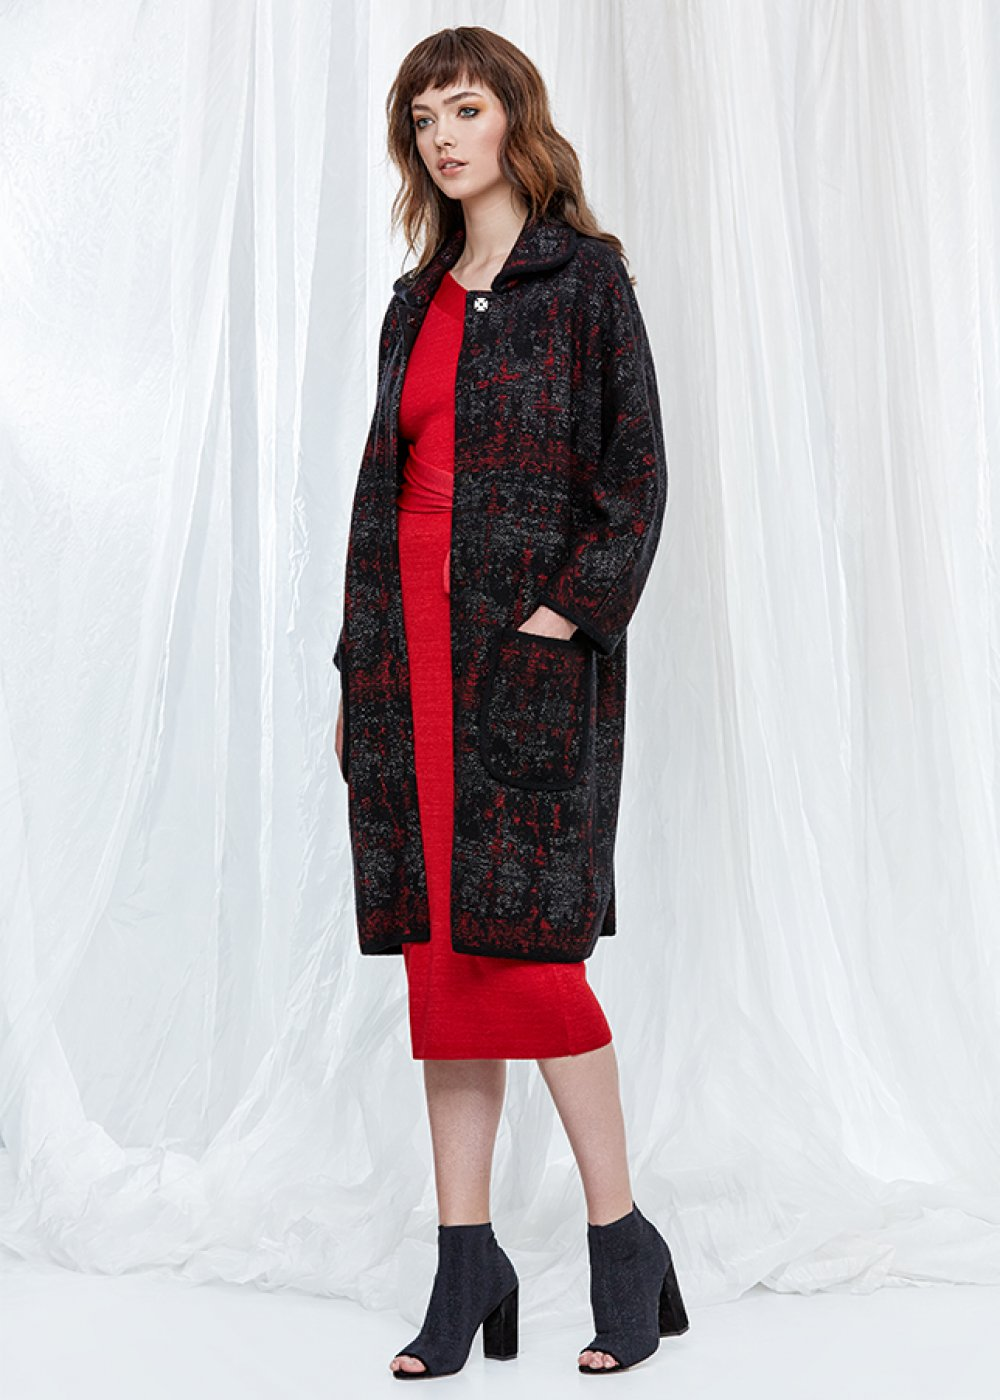 Patterned Wool Blend Black Knit Coat